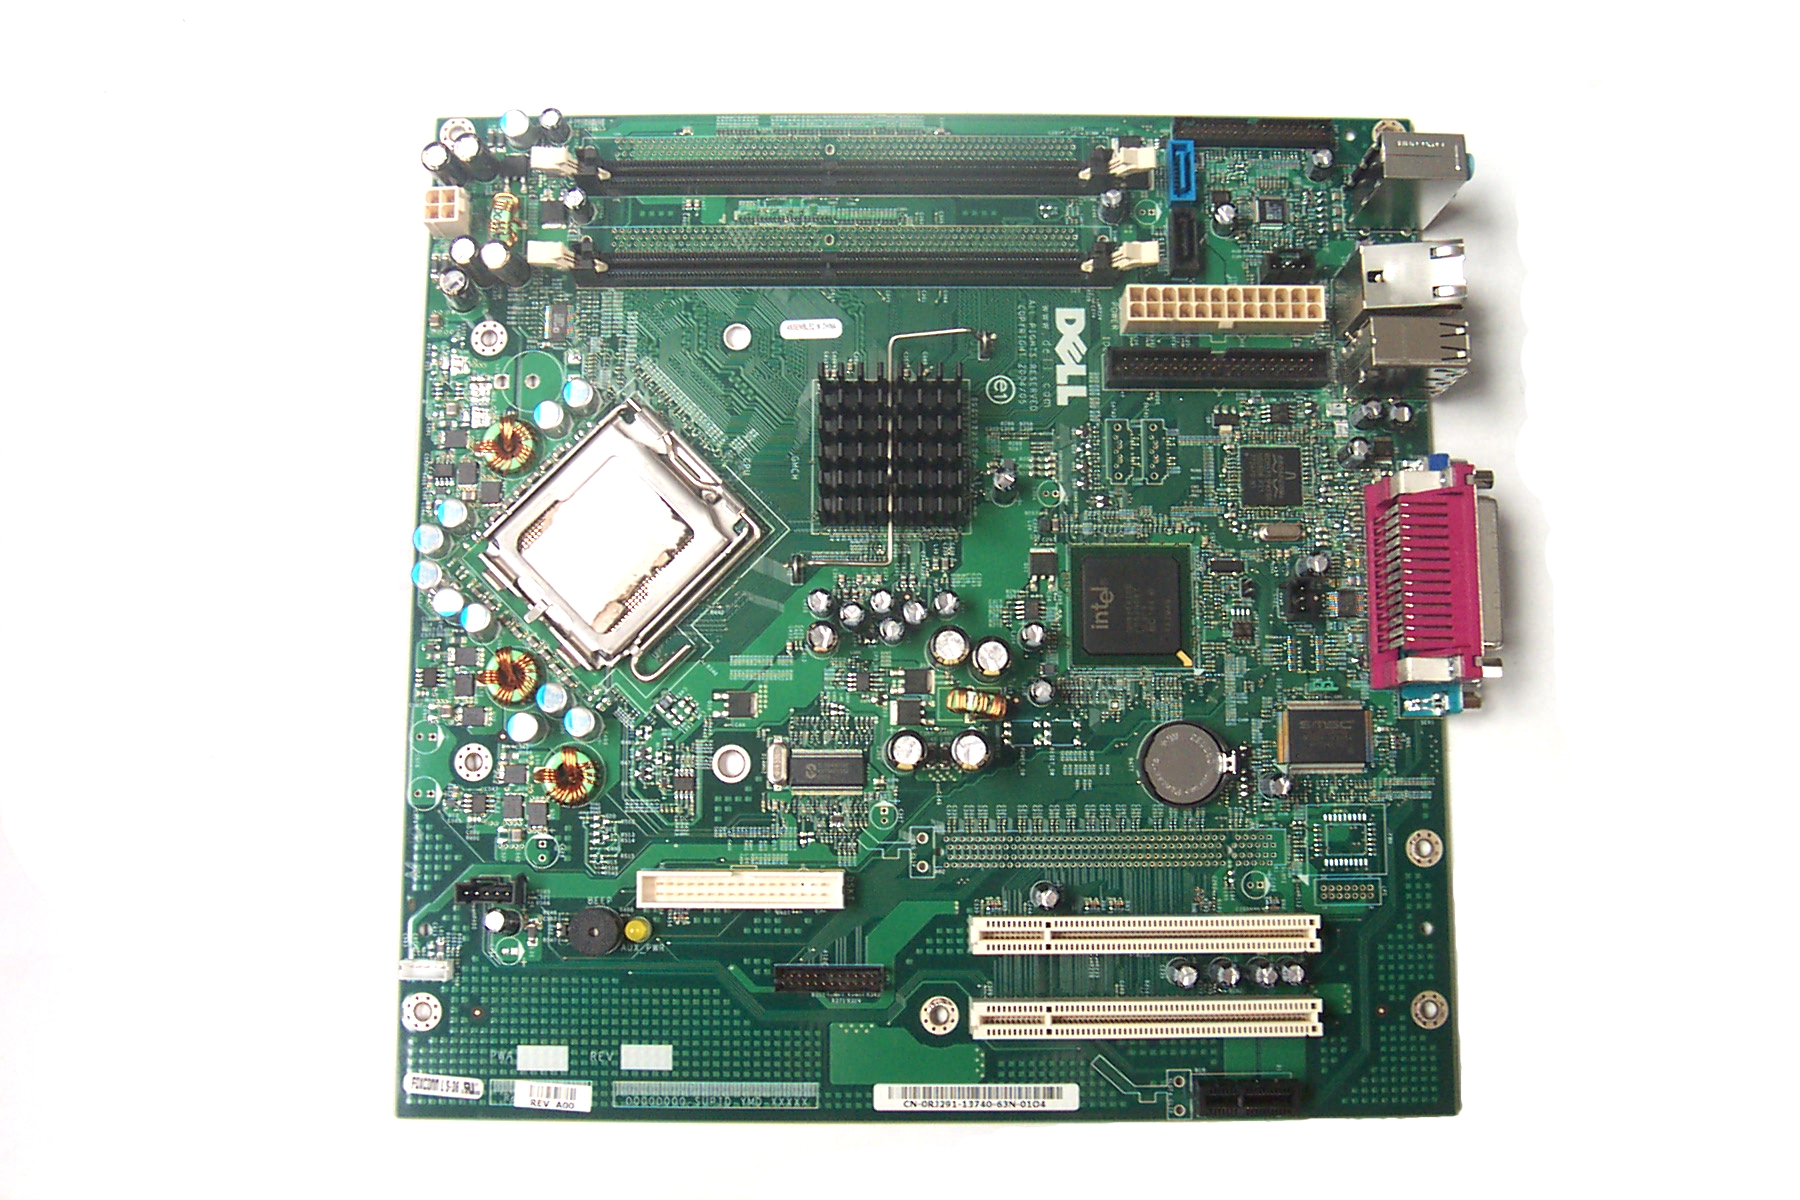 Btx Motherboard Diagram With Labels Trusted Wiring Http Campnfamcom Galleries Motherboarddiagramwithlabelsmissing Of Dell Gx520 Electrical Work U2022 Labeled And Buses